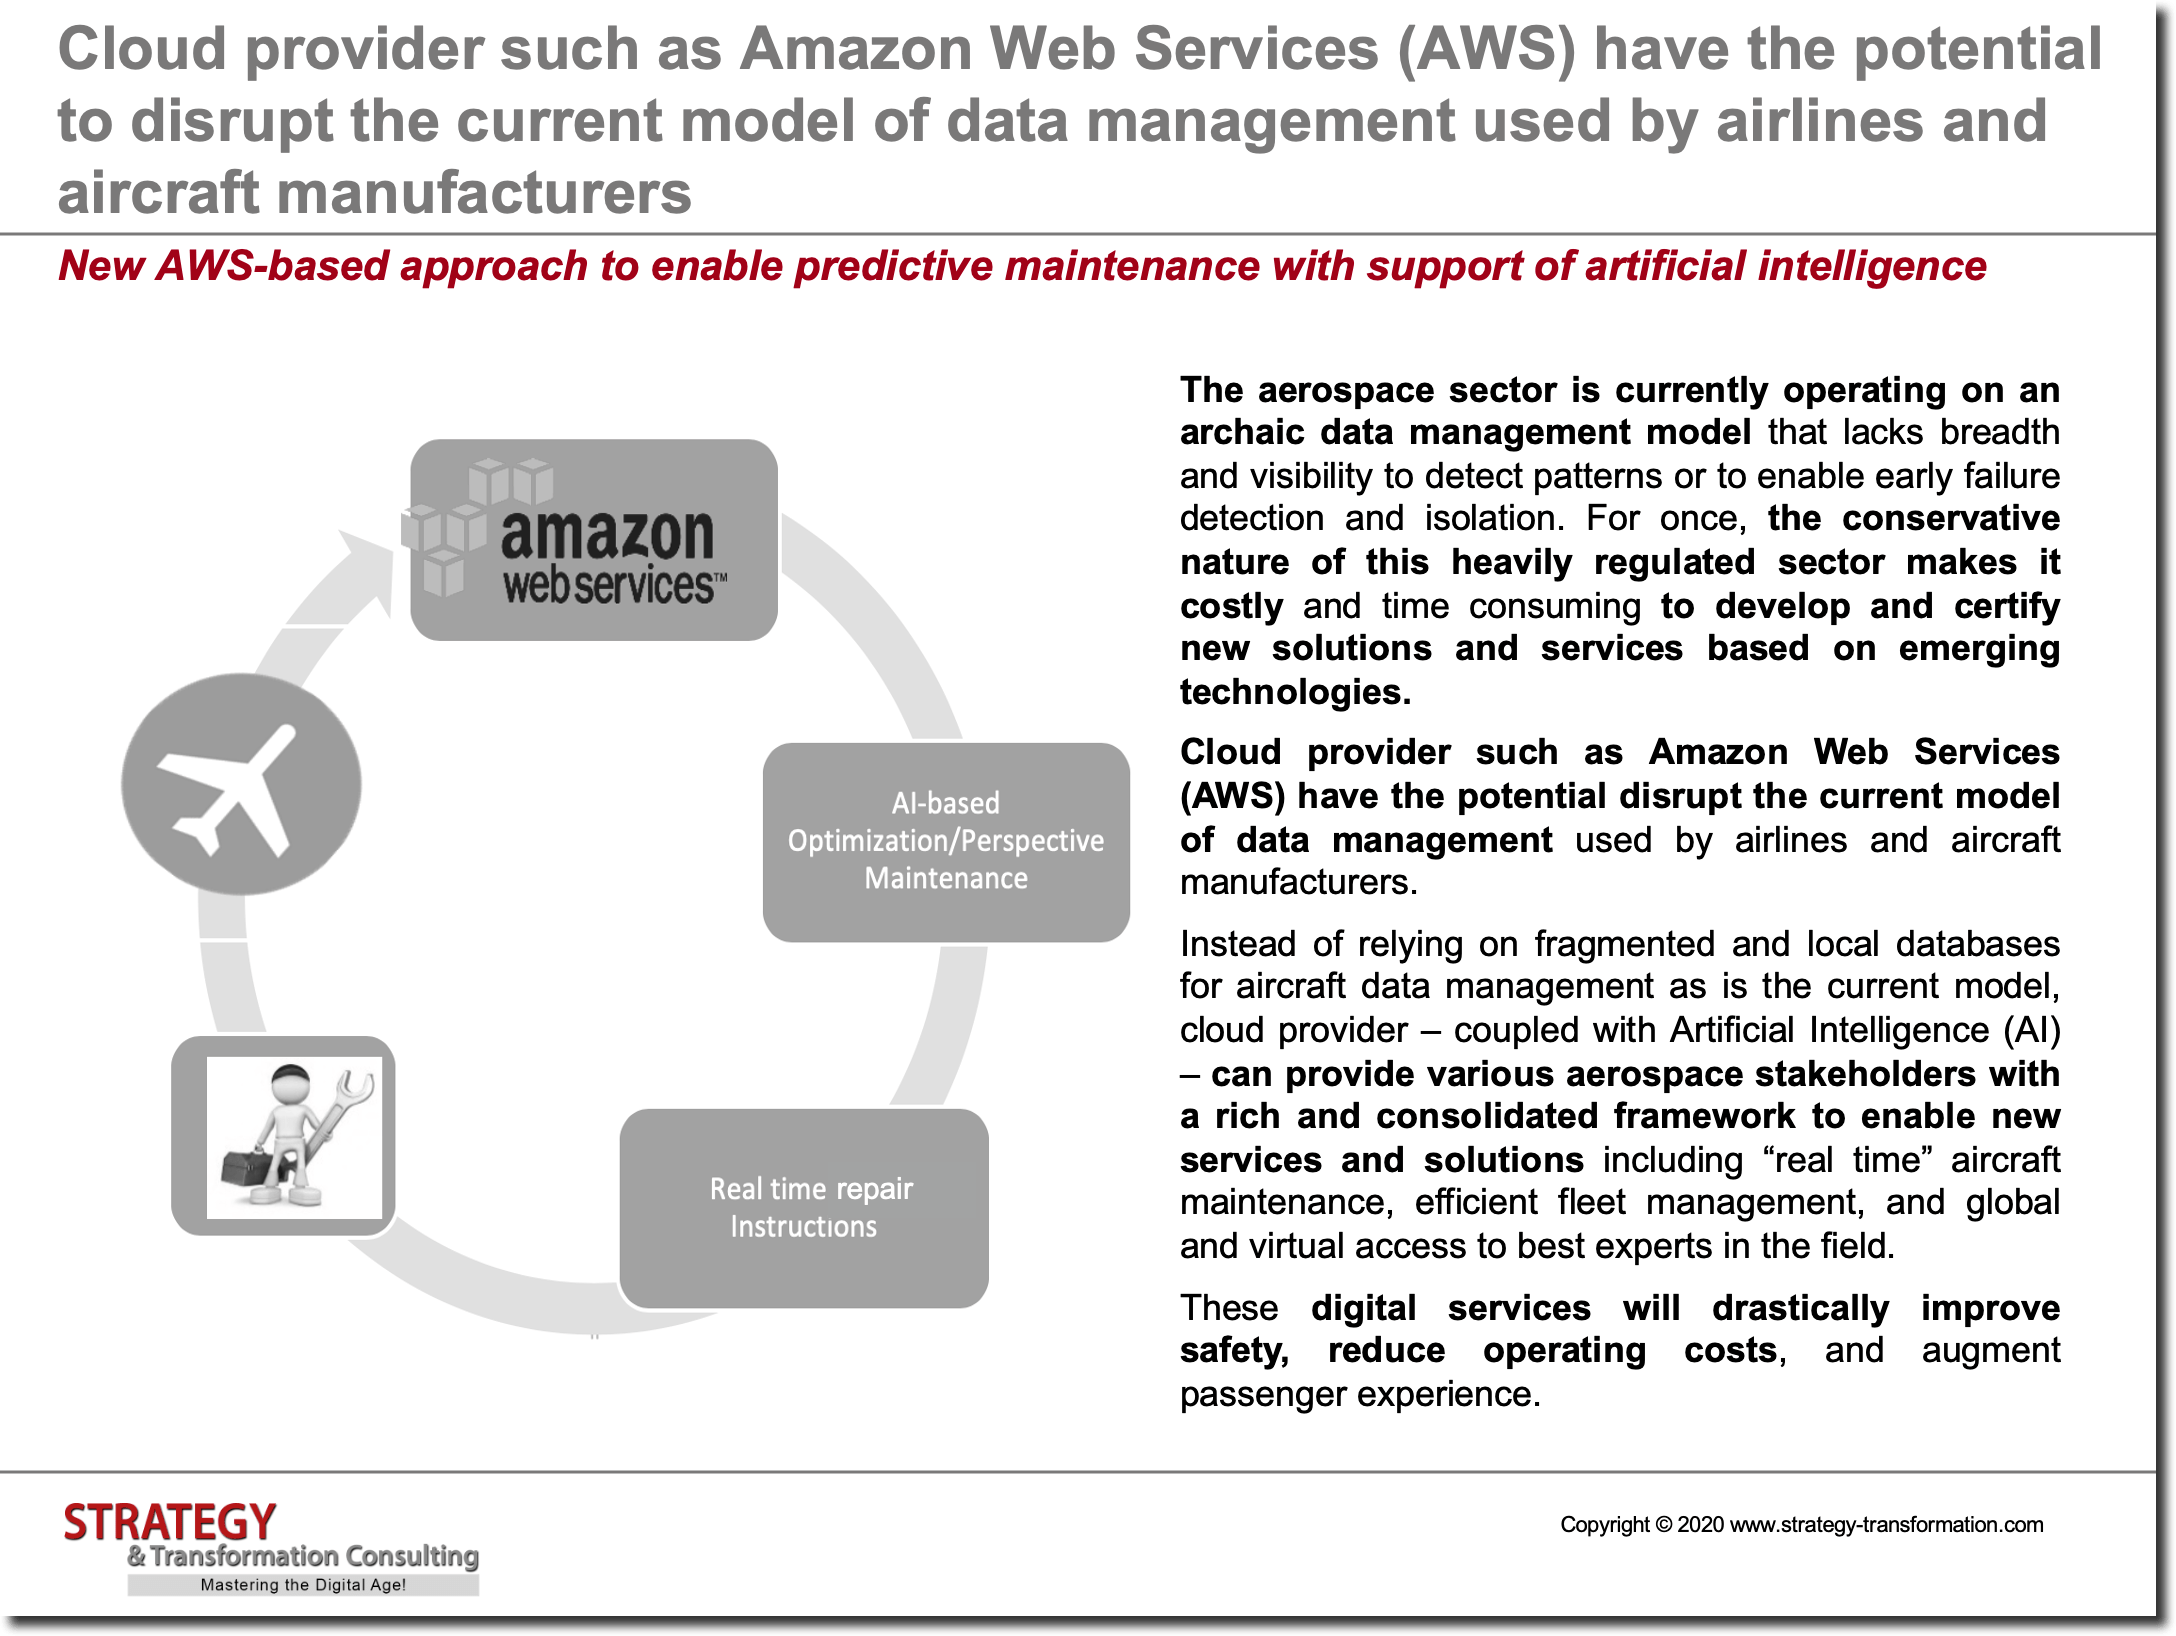 New AWS-based approach to enable predictive maintenance with support of artificial intelligence